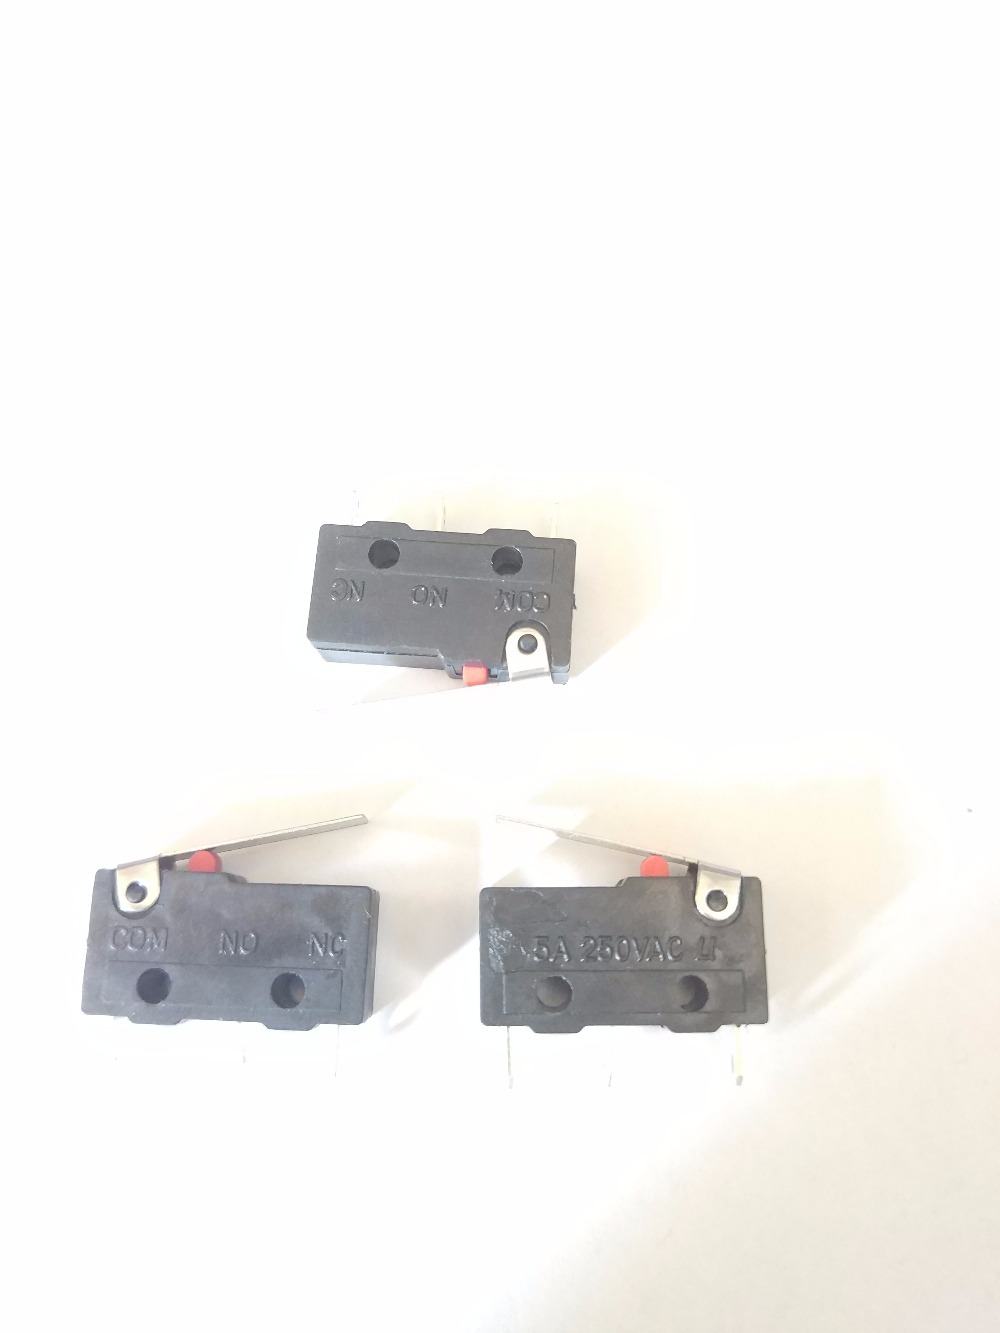 Free Shipping 20 pcs/lot Limit Switch, 3 Pin N/O N/C High quality All New 5A 250VAC KW11-3Z Micro Switch Factory